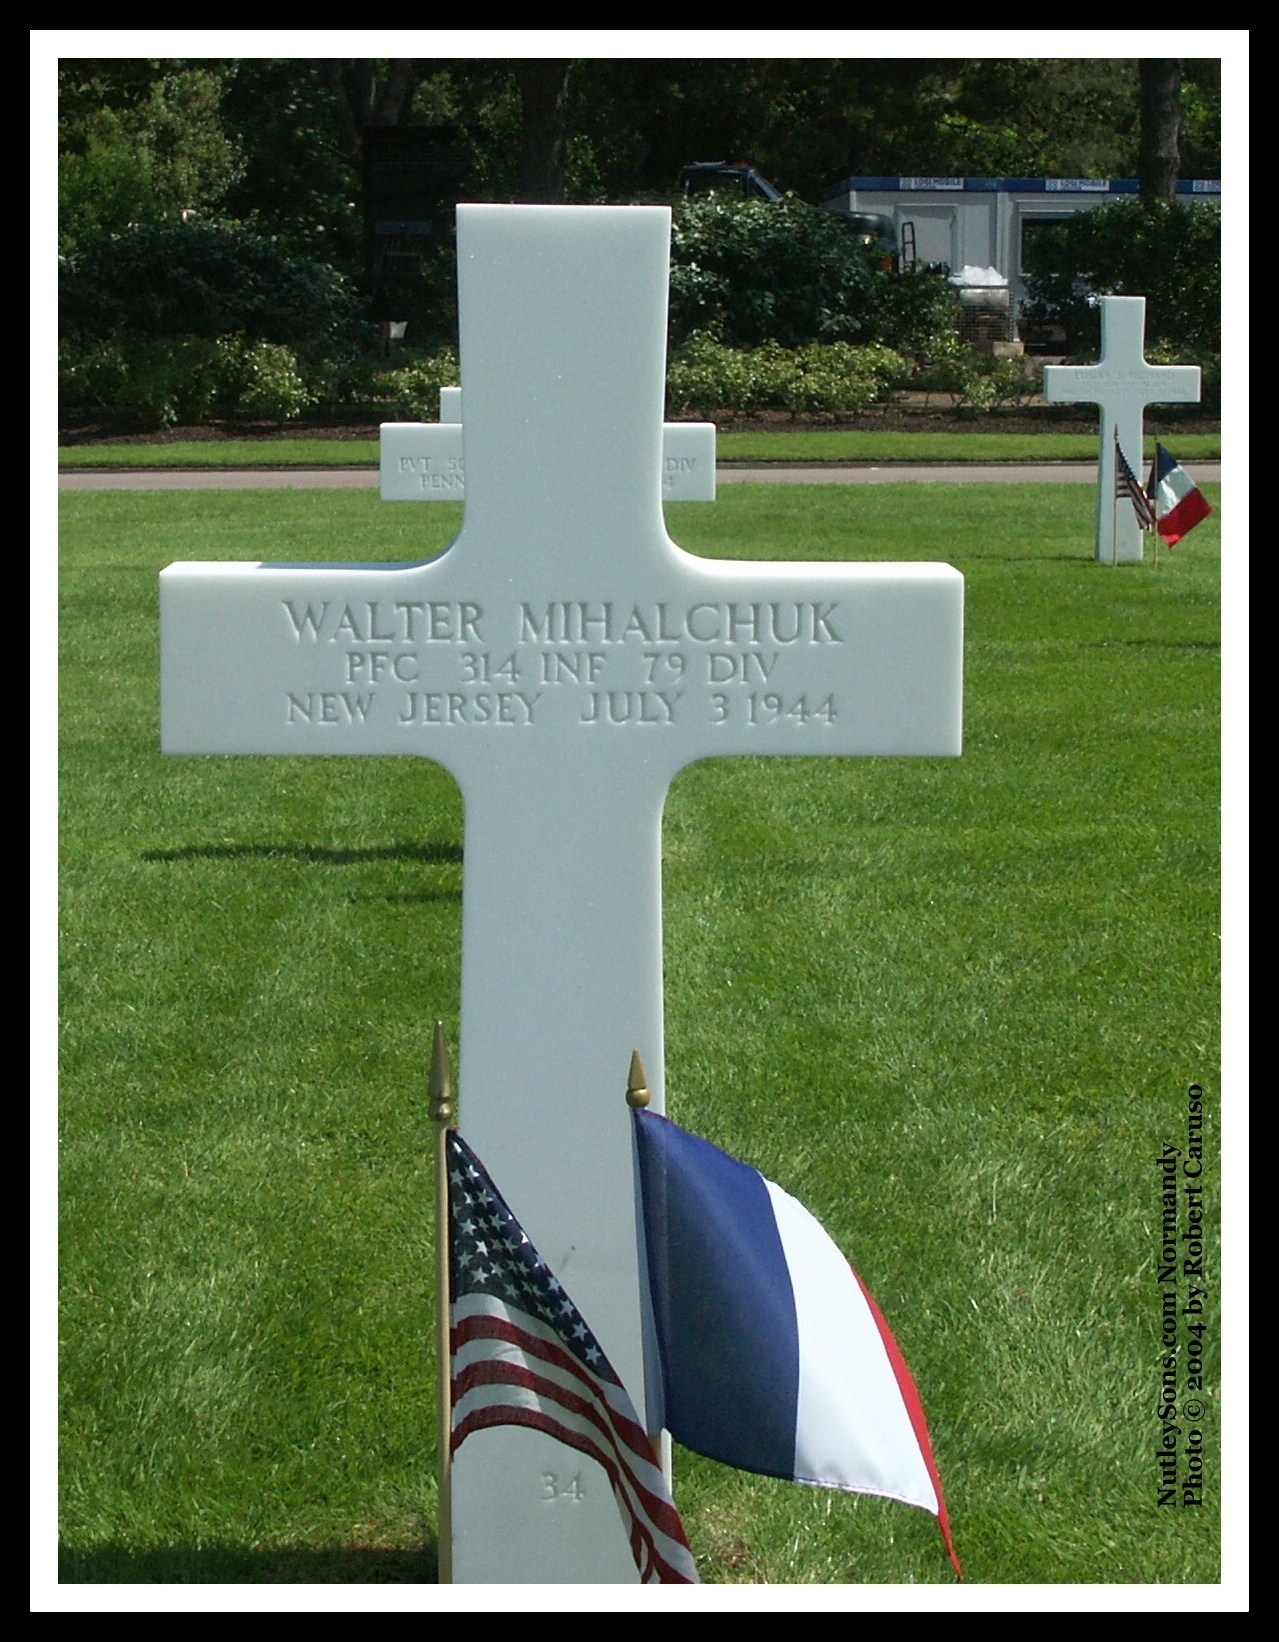 Pfc. Walter Mihalchuk of Nutley, N.J., was KIA on July 3, 1944, in Normandy,France.